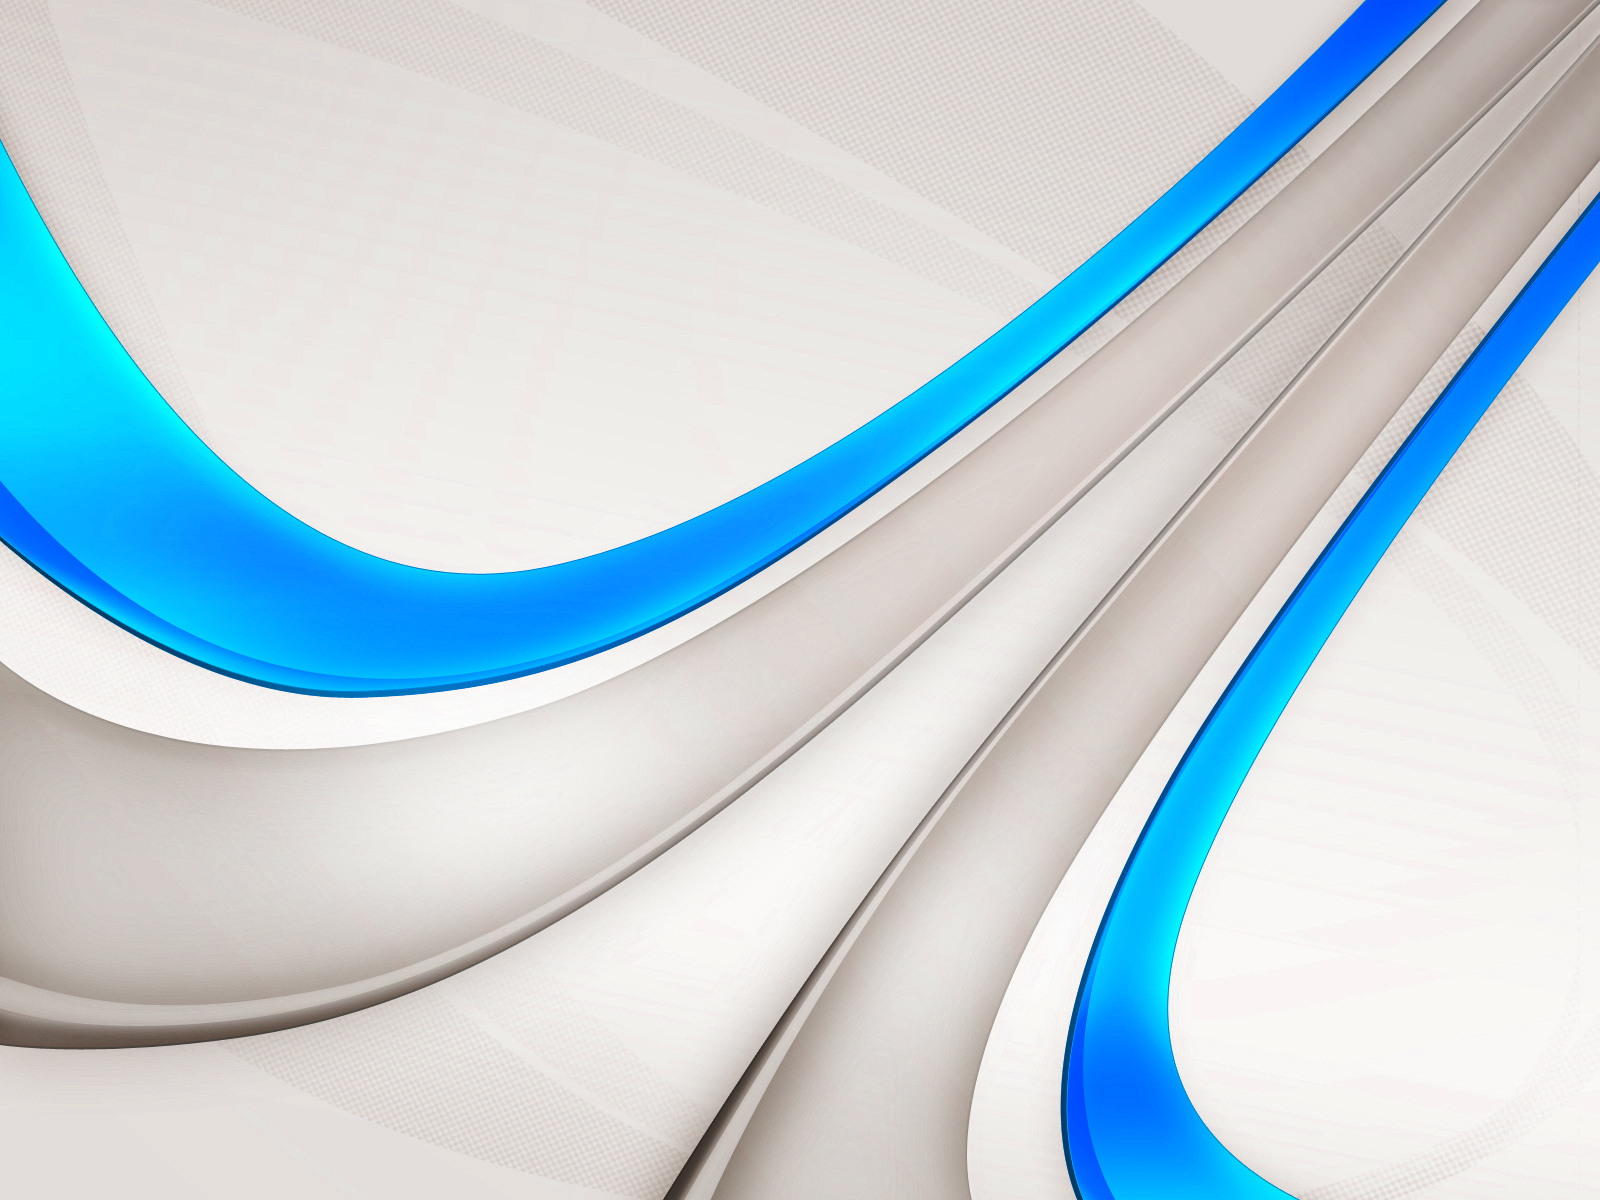 Blue And White Abstract Wallpaper Abstract wallpaper 1600x1200